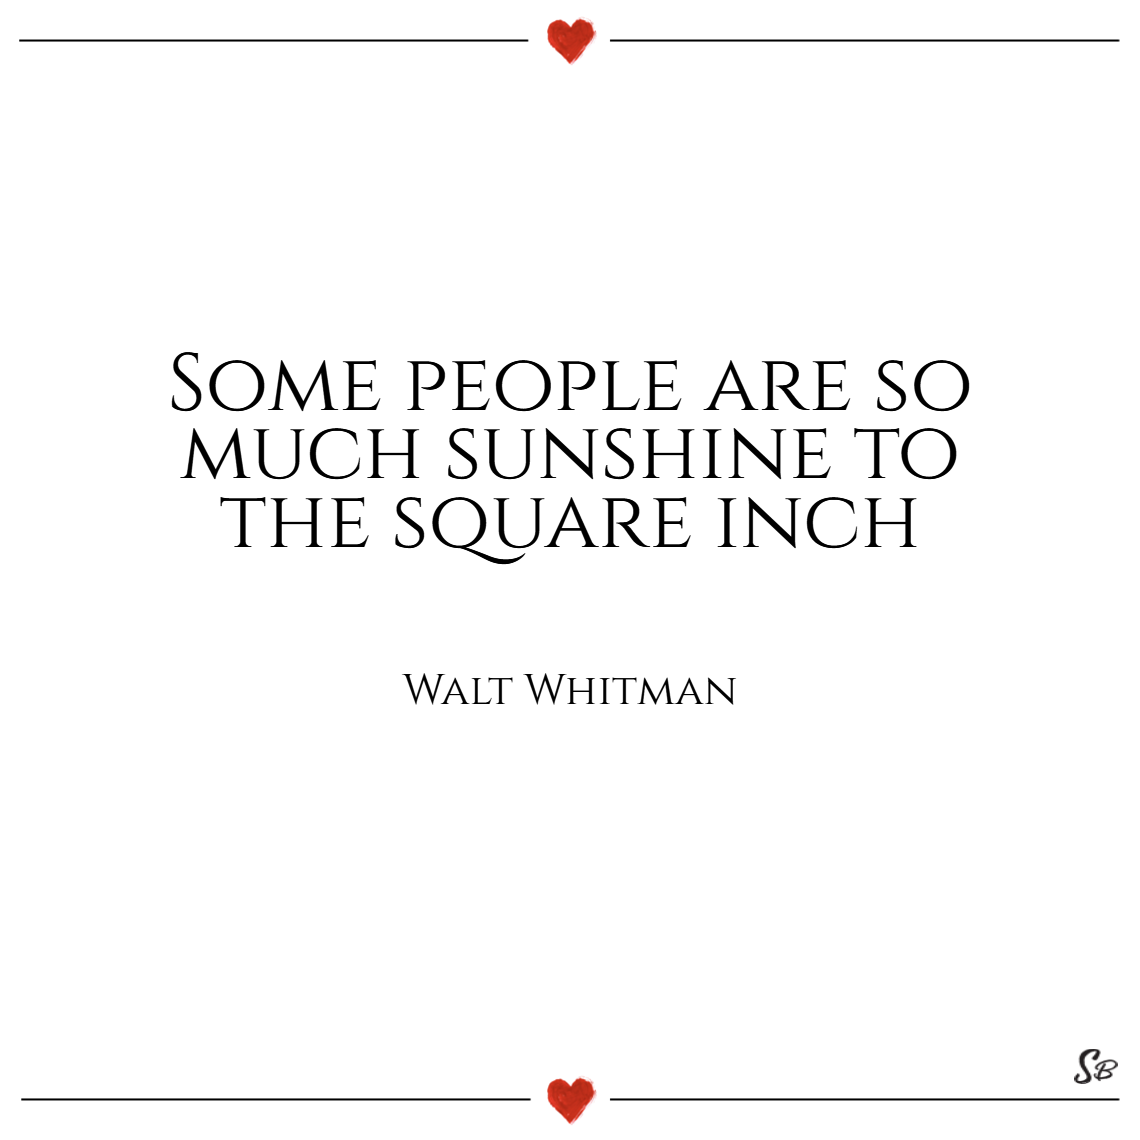 Some people are so much sunshine to the square inch. – walt whitman